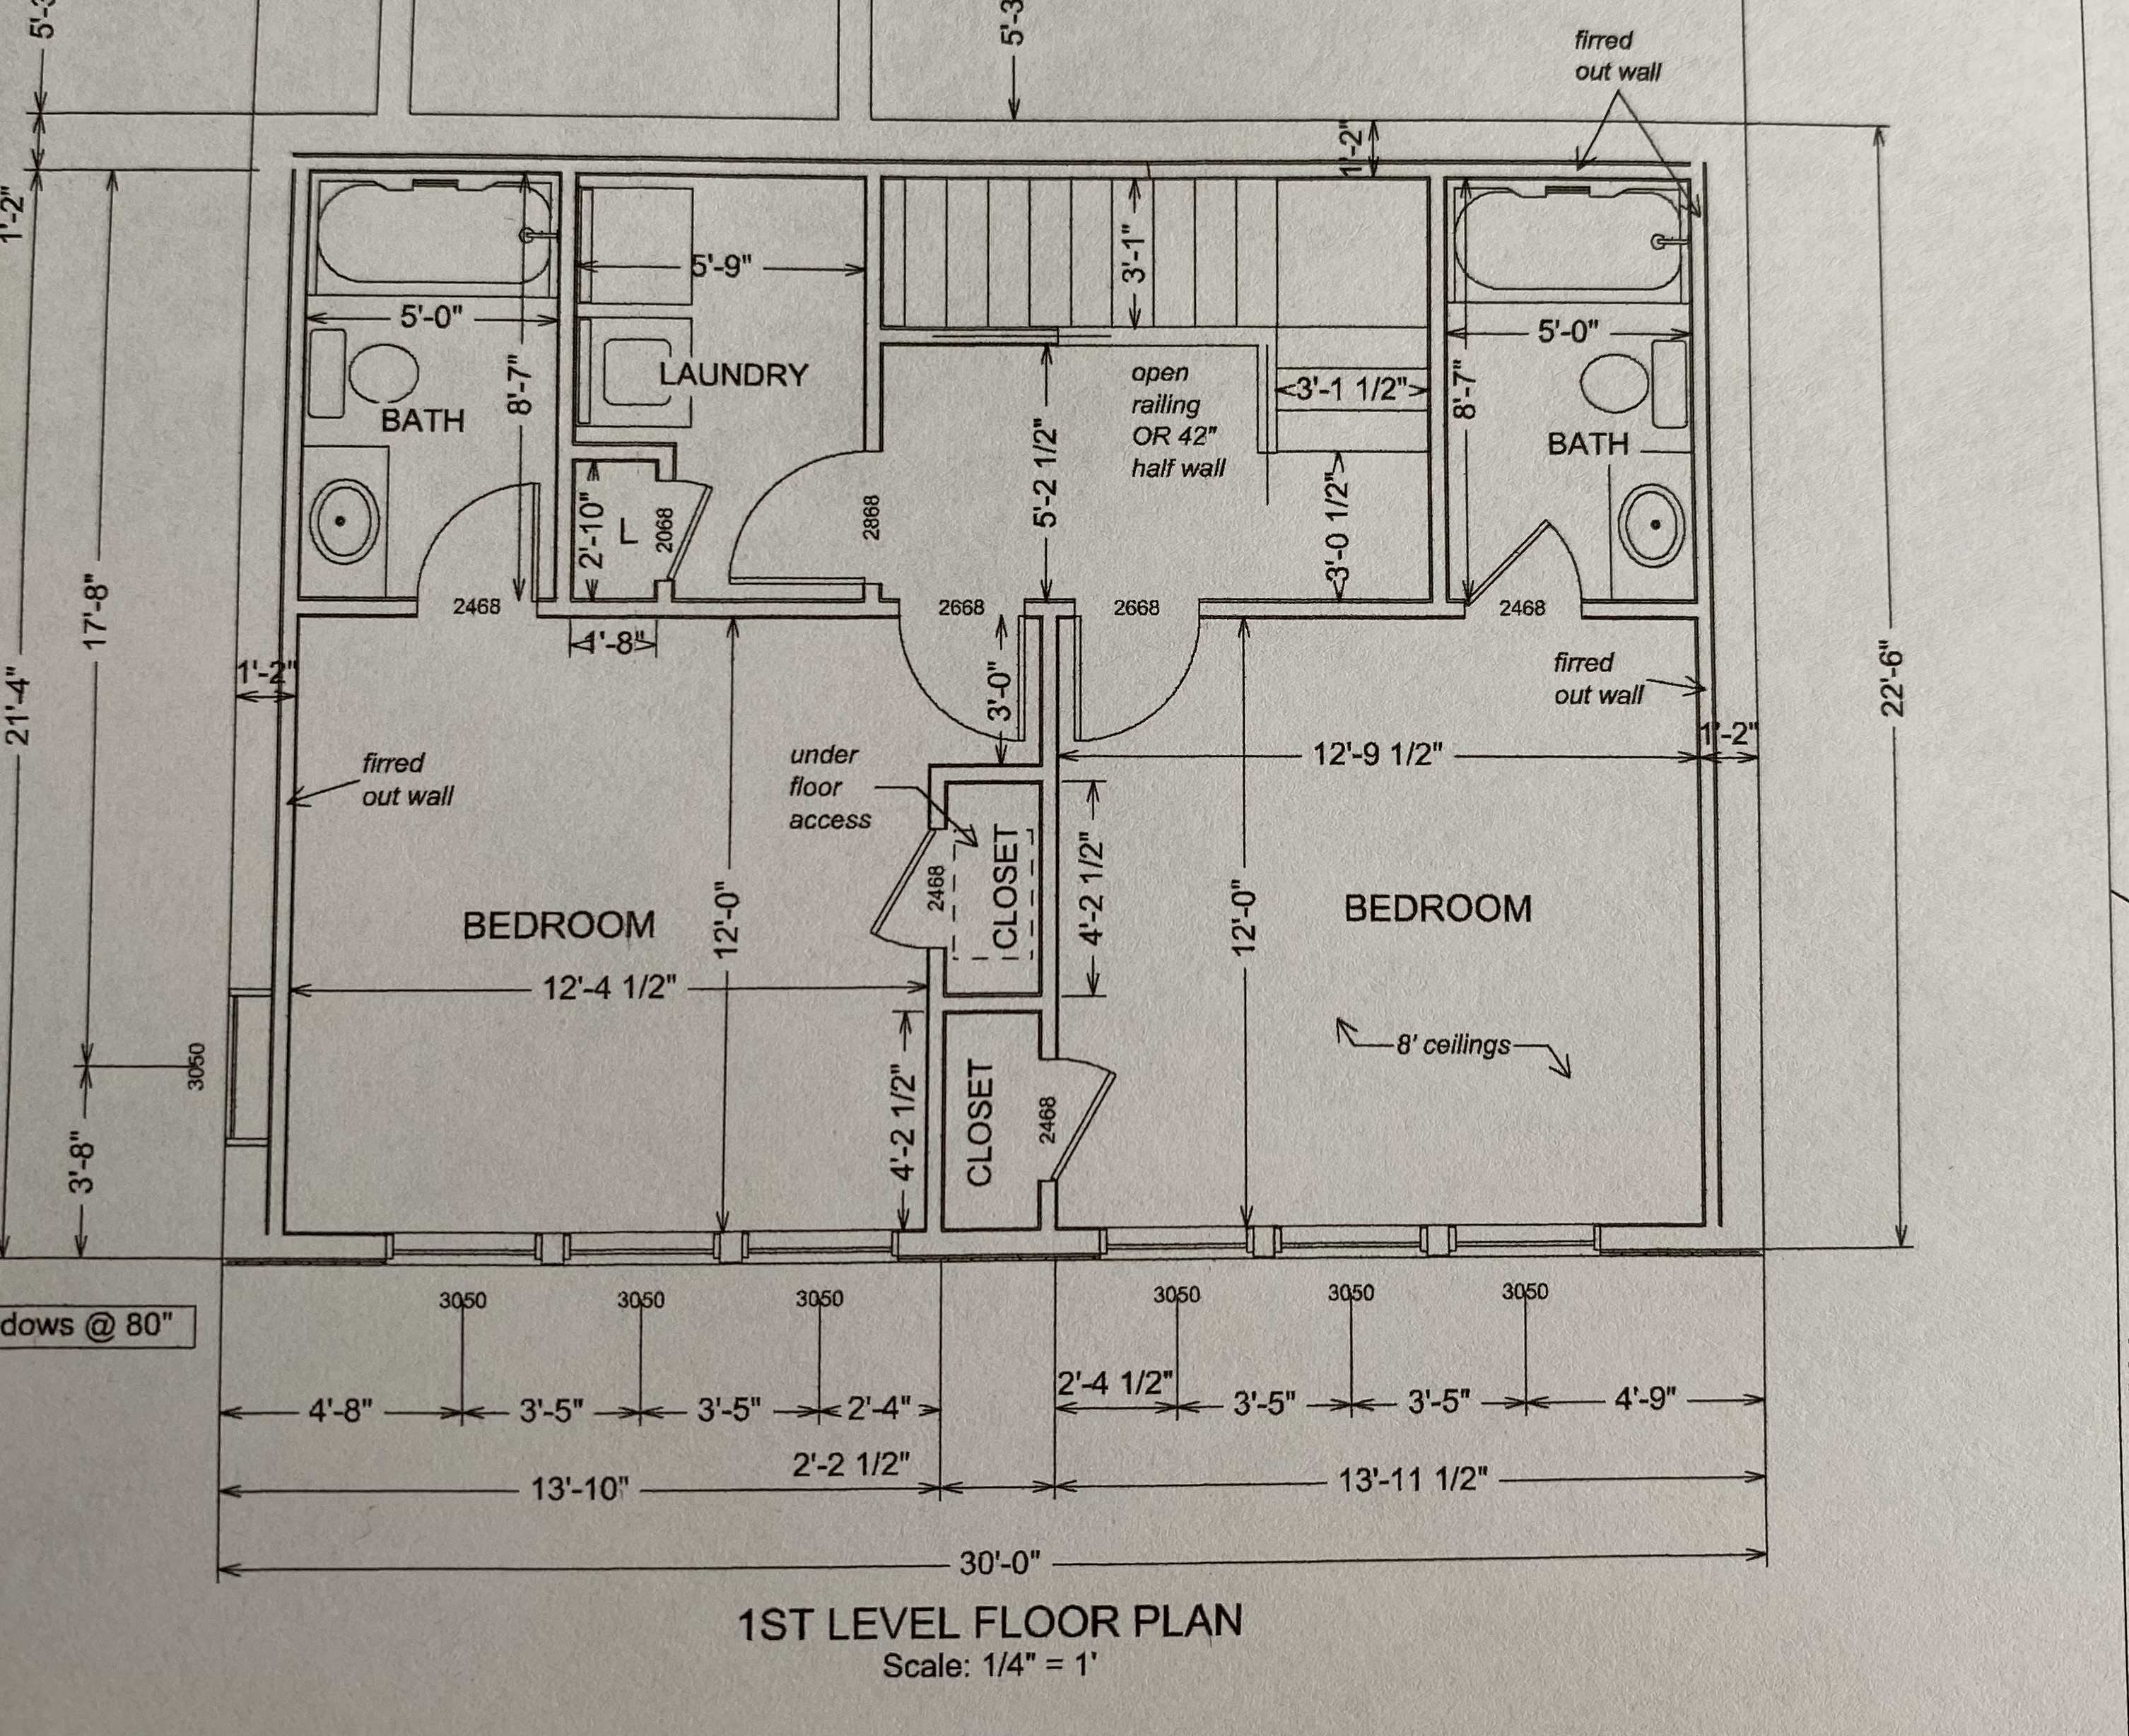 Lot 119 - New Plan Level 1